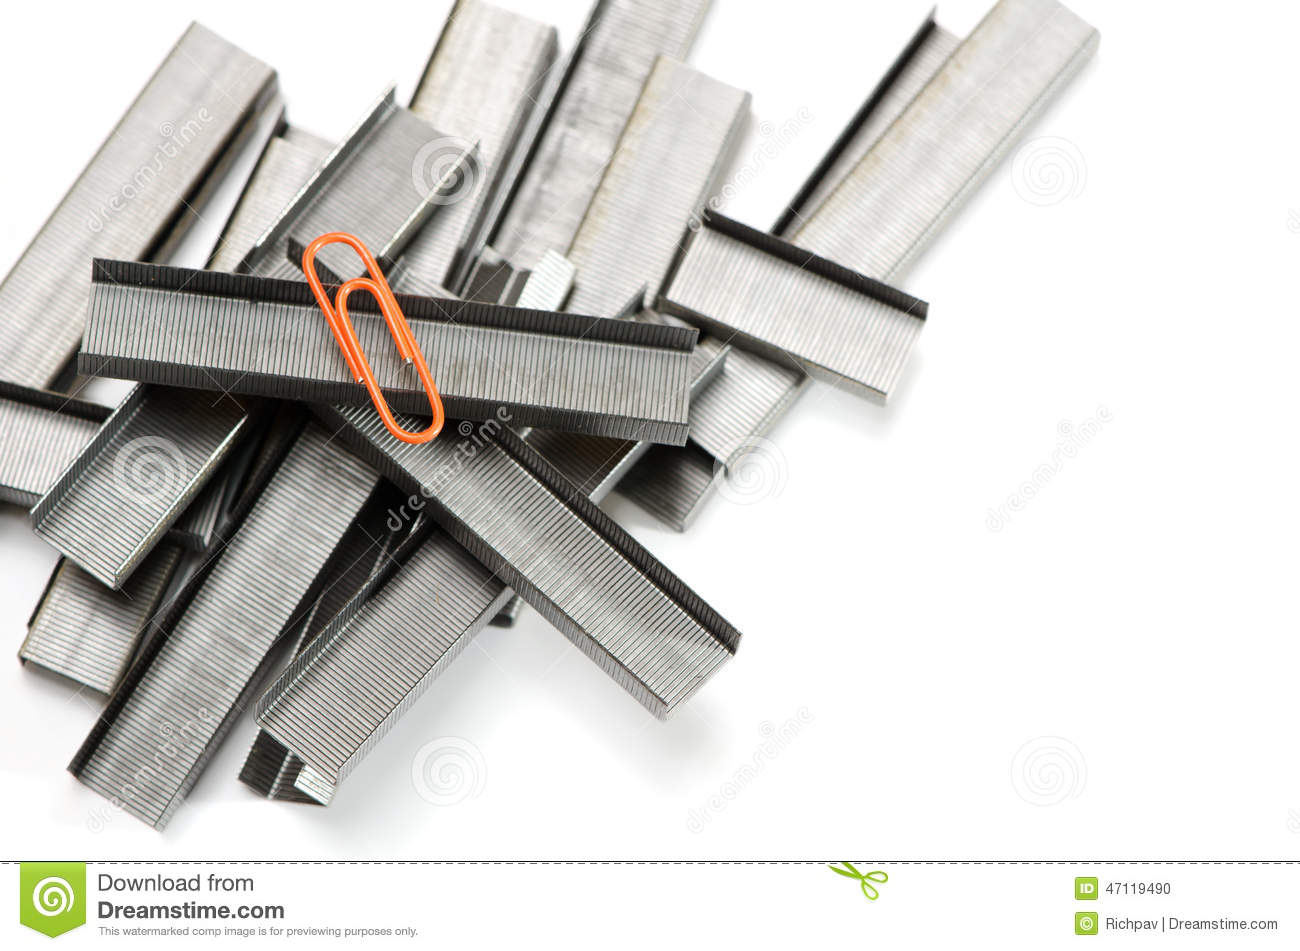 Stapler wire stock photo. Image of hardware, supply, outstanding ...